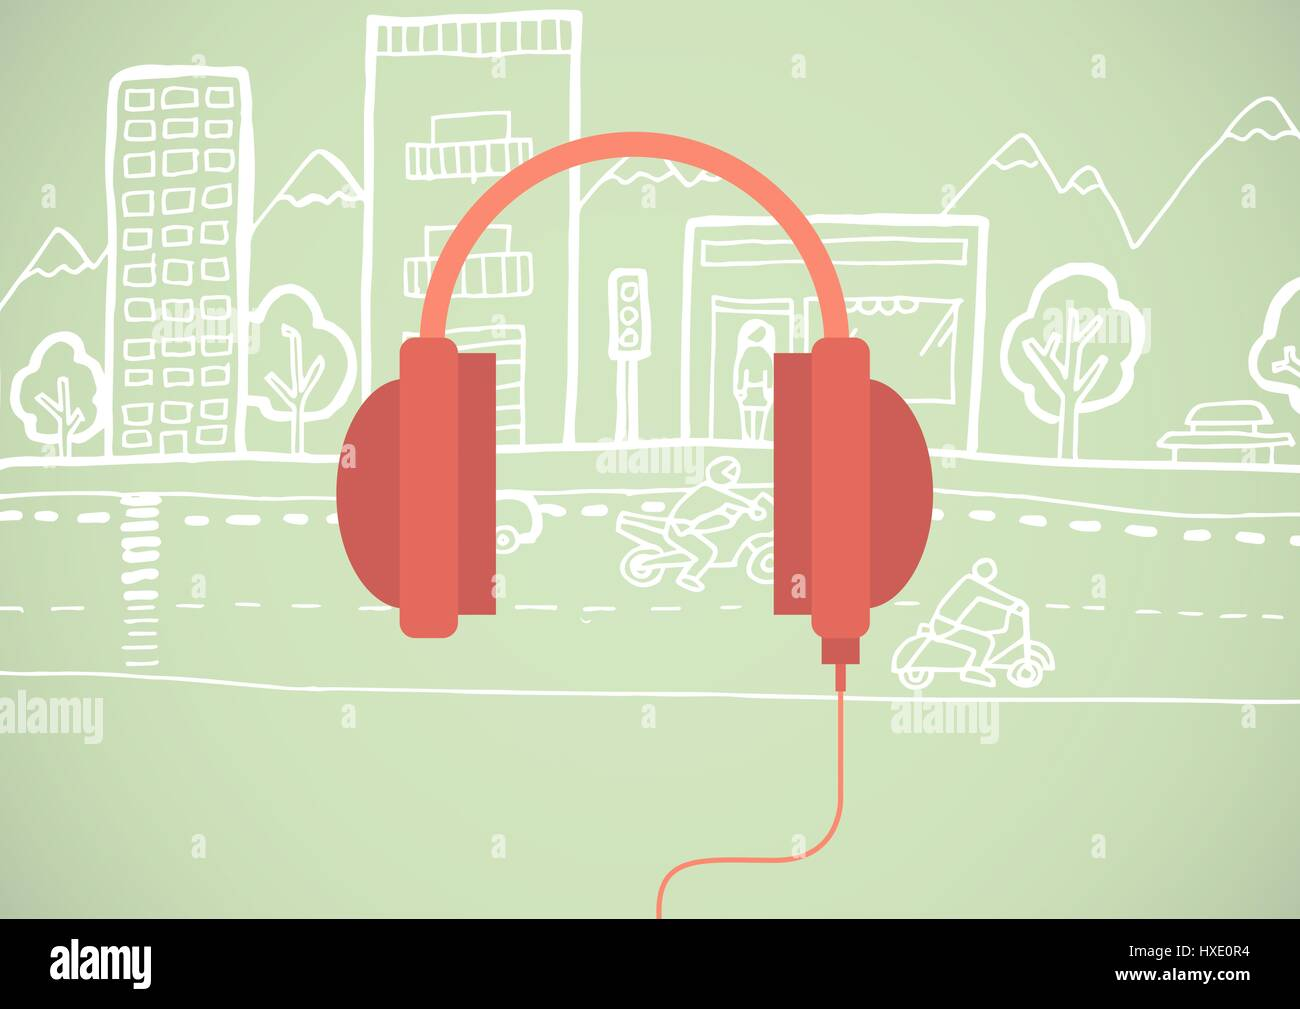 Digital composite of Red headphone illustration icon in cirlce against green background with street drawing - Stock Image